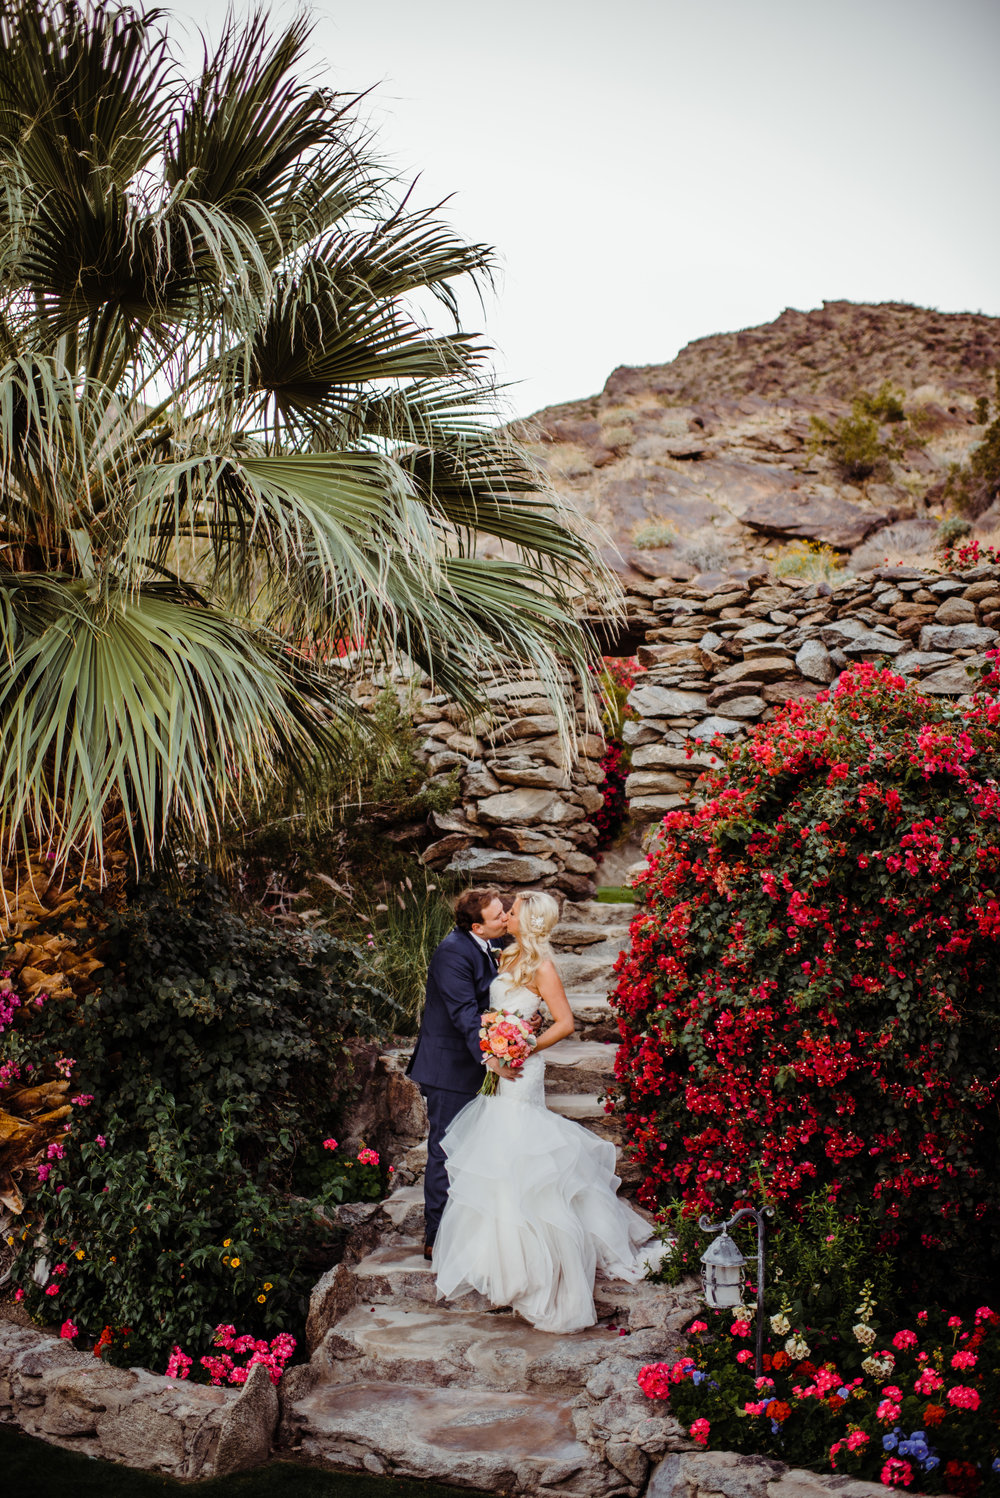 Chris + Britta - O'Donnell House, Palm Springs